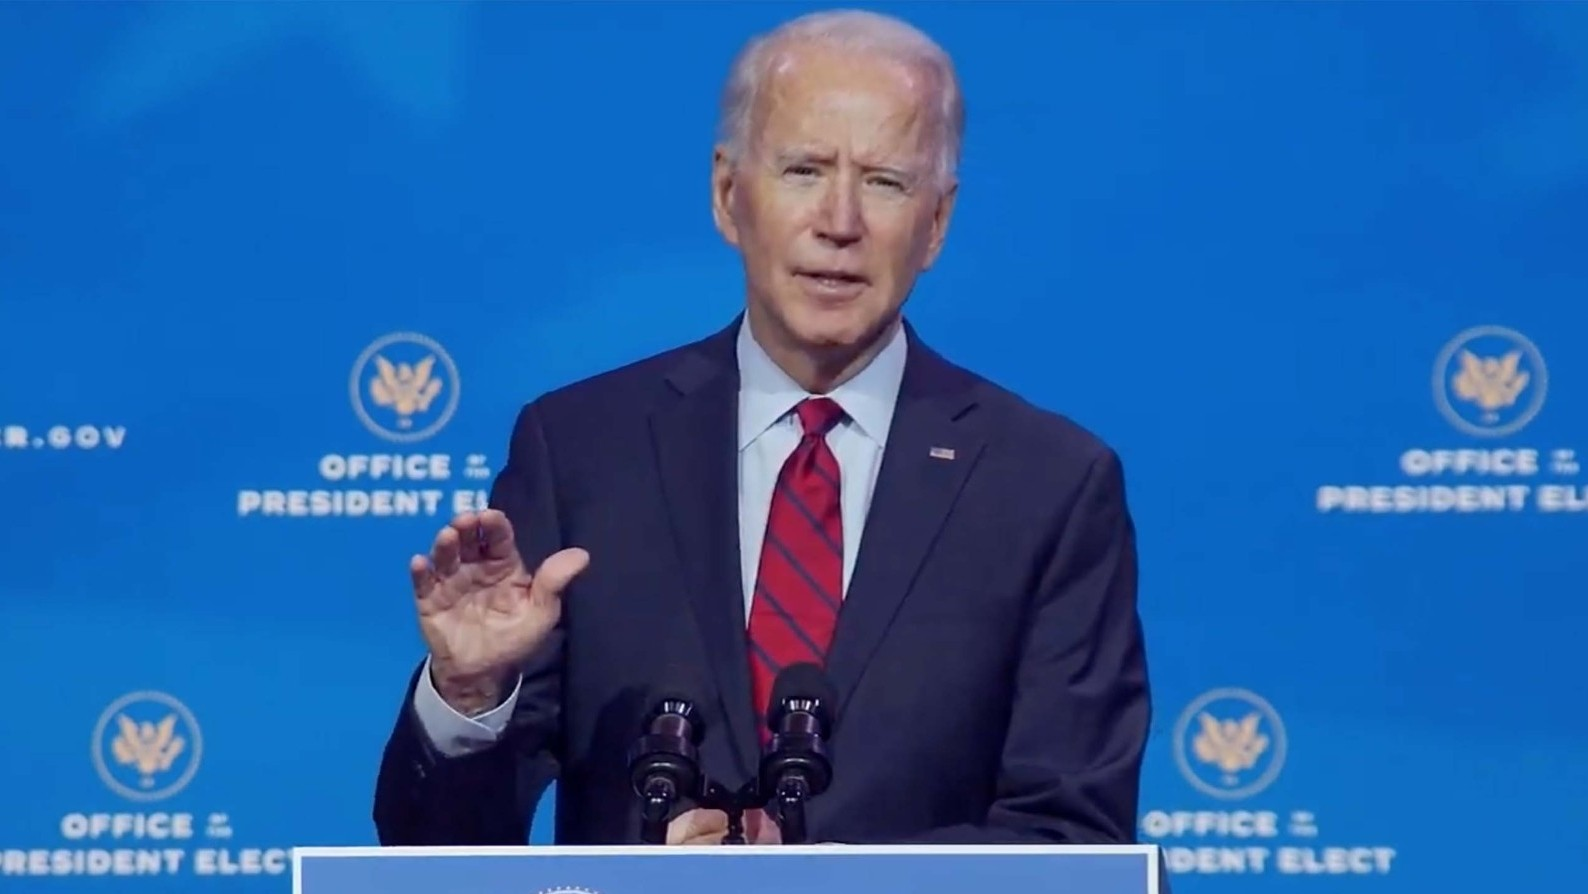 President-elect Biden announces his key health team nominees and appointees in Wilmington, DE, December 8, 2020, photo by CNP/InStar/Cover Images/Reuters